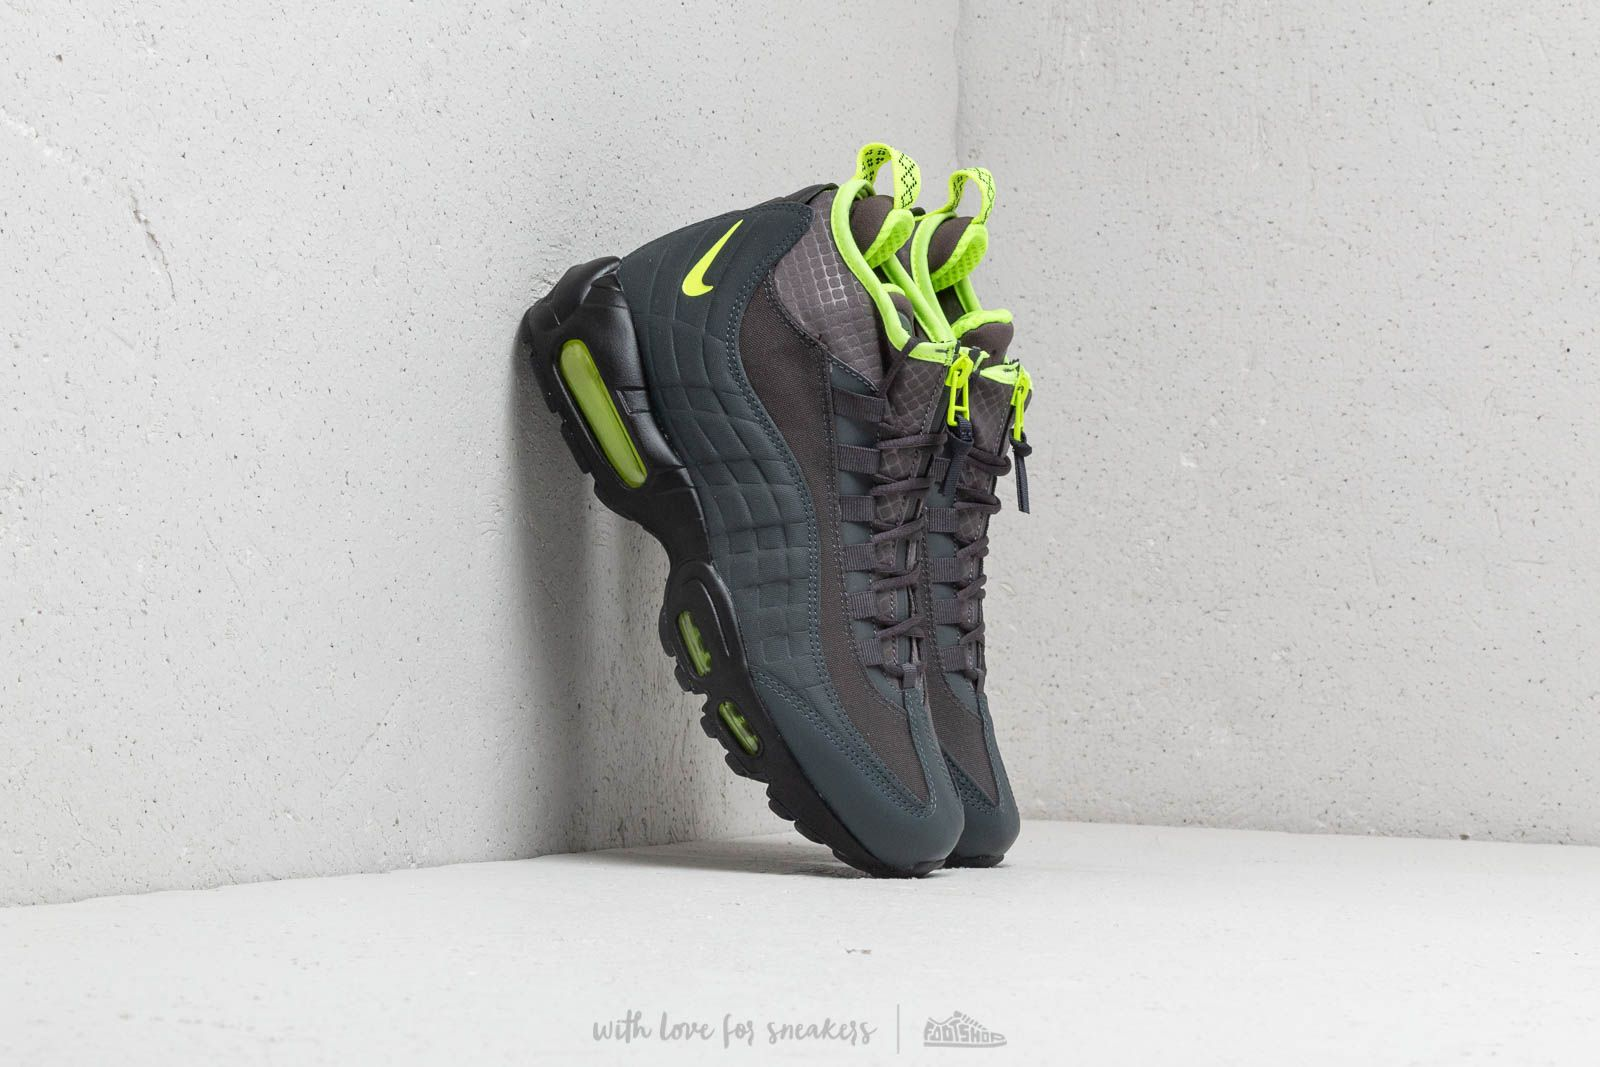 Nike Air Max 95 Sneakerboot Anthracite Volt Dark Frey | Footshop